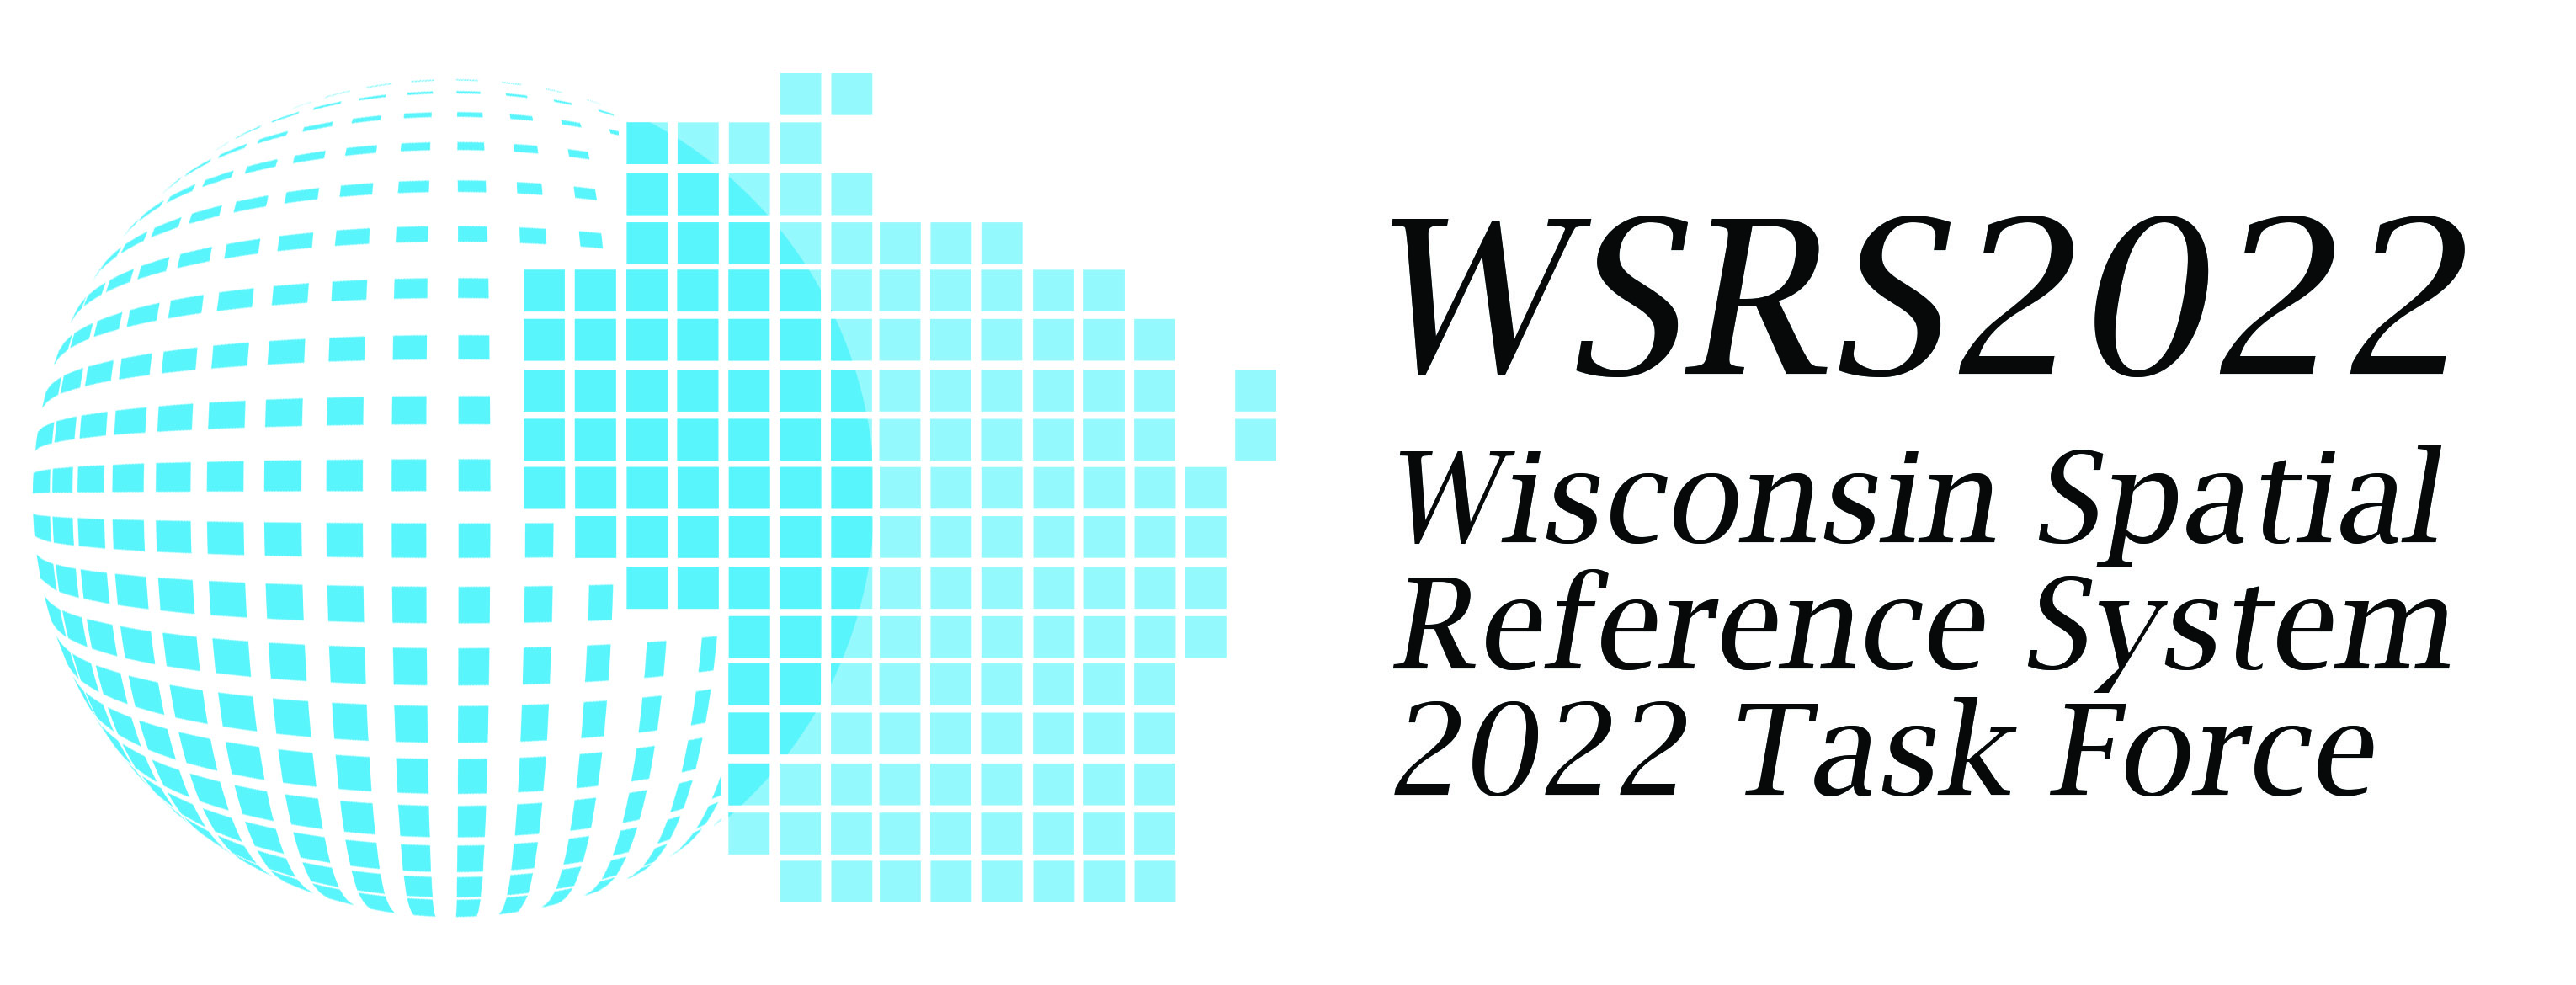 WSRS2022: The Wisconsin Spatial Reference System 2022 Task Force